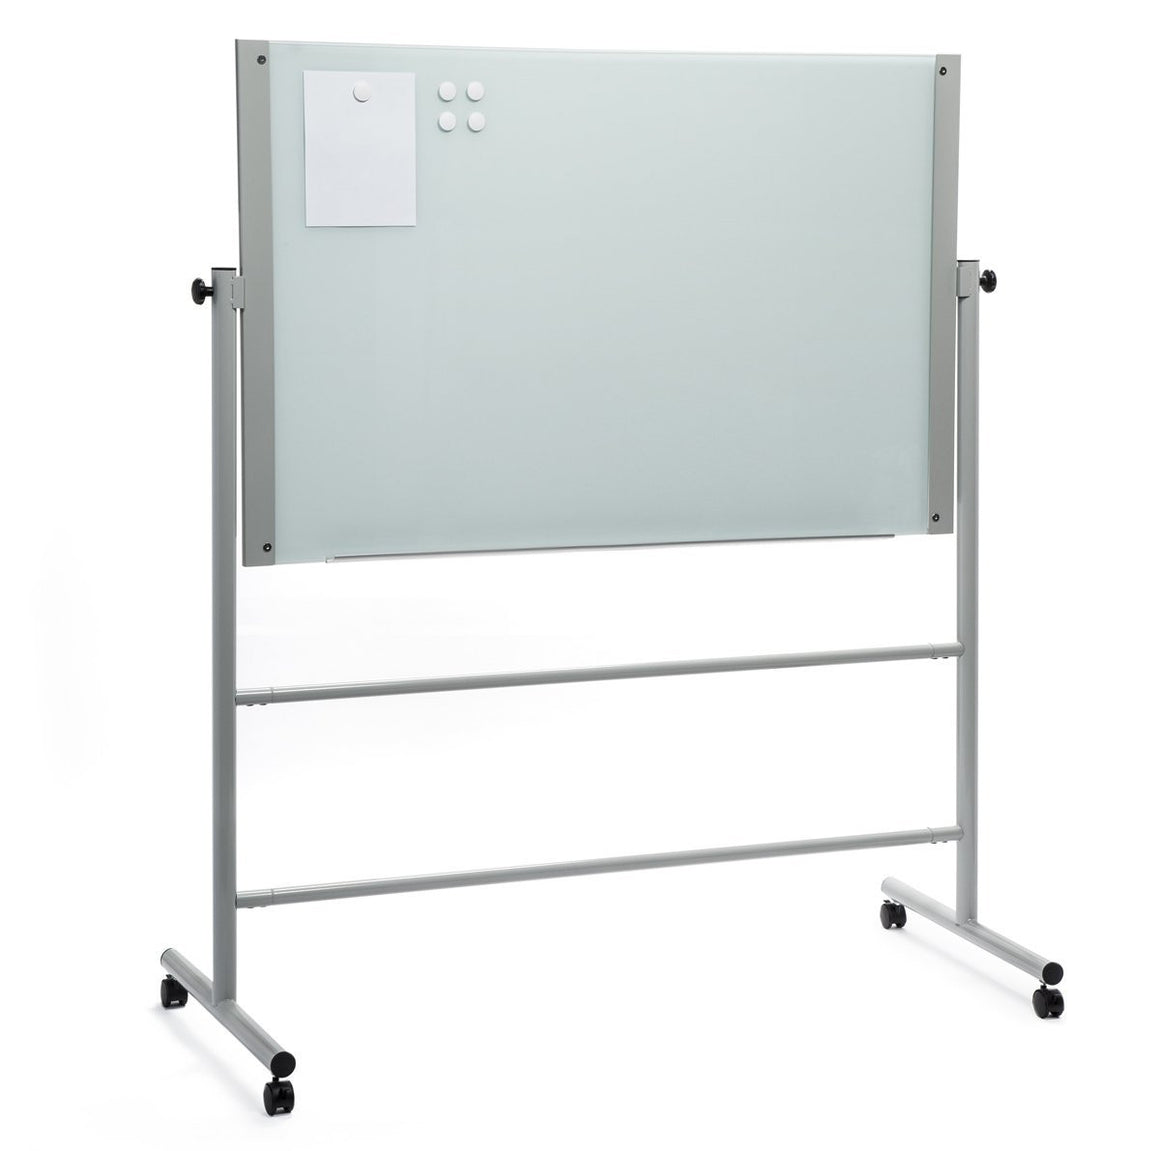 Mobile Rolling Easel Stand for Glass Dry Erase Boards (Stand only)